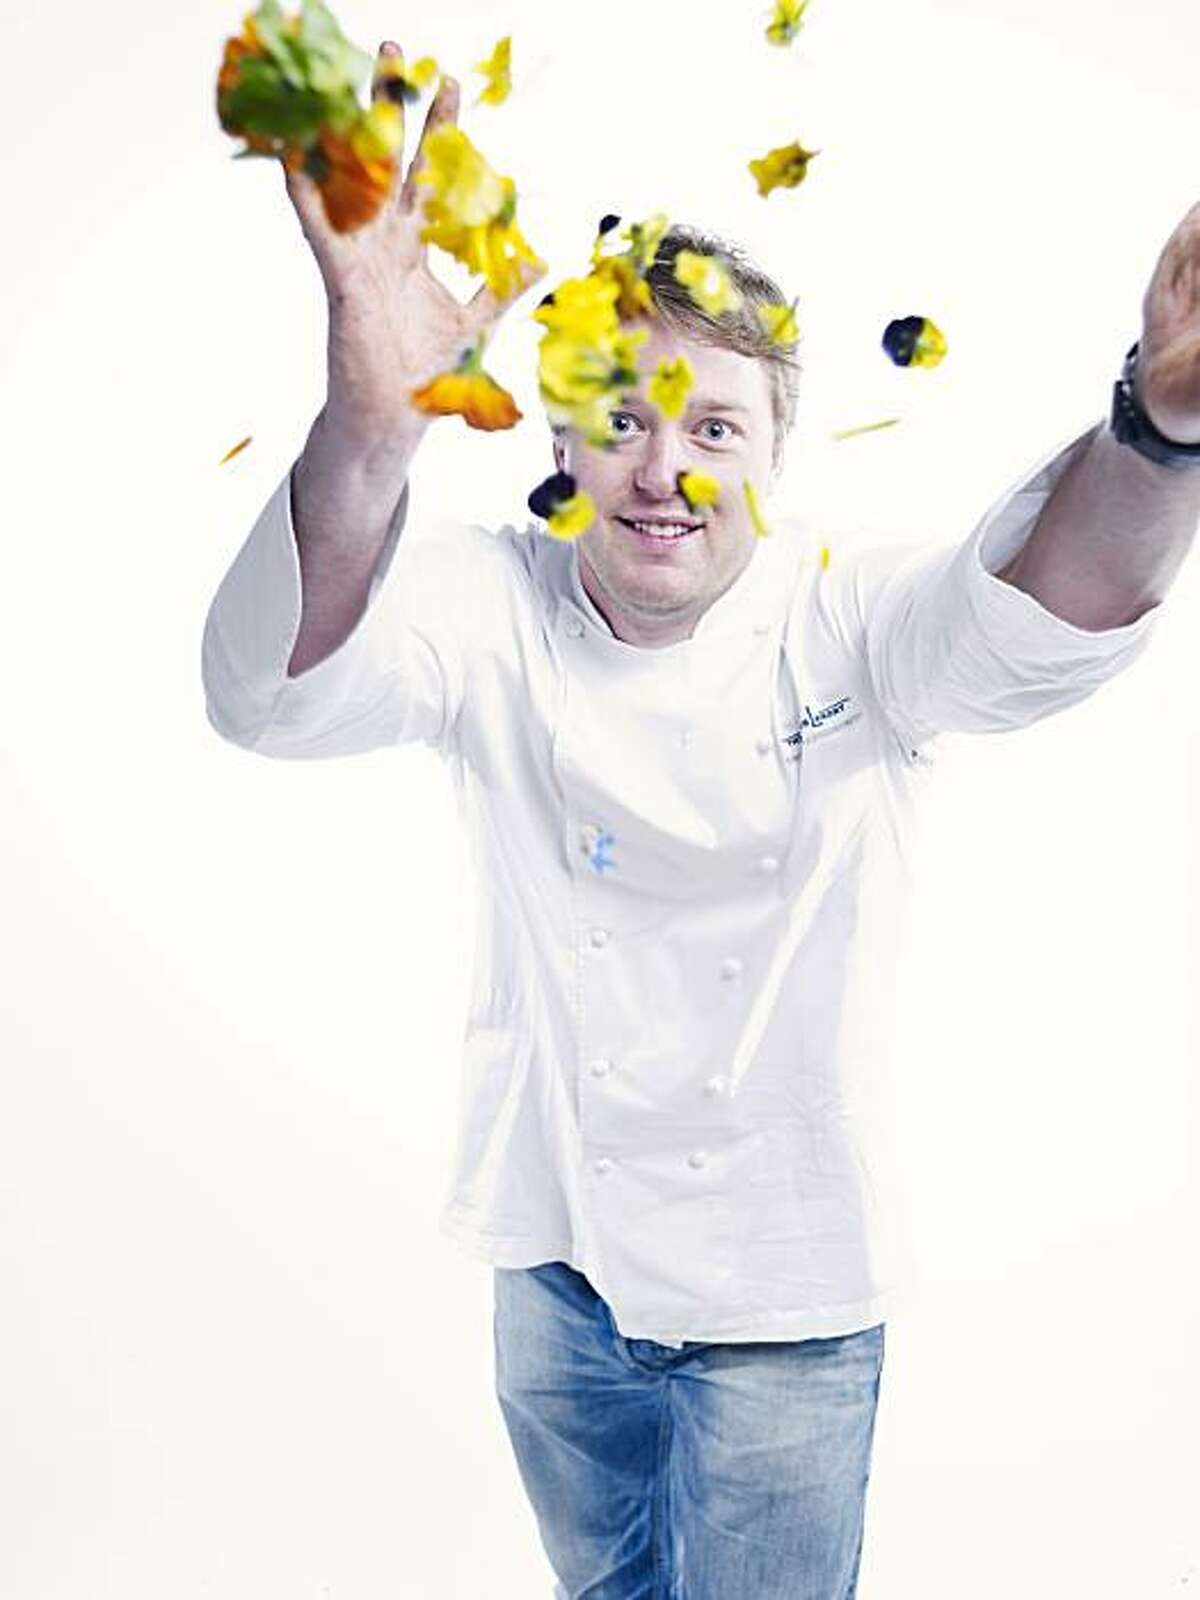 Timothy Hollingsworth, chef de cuisine at the French Laundry in Yountville. Photo taken in the Chronicle photo studio.